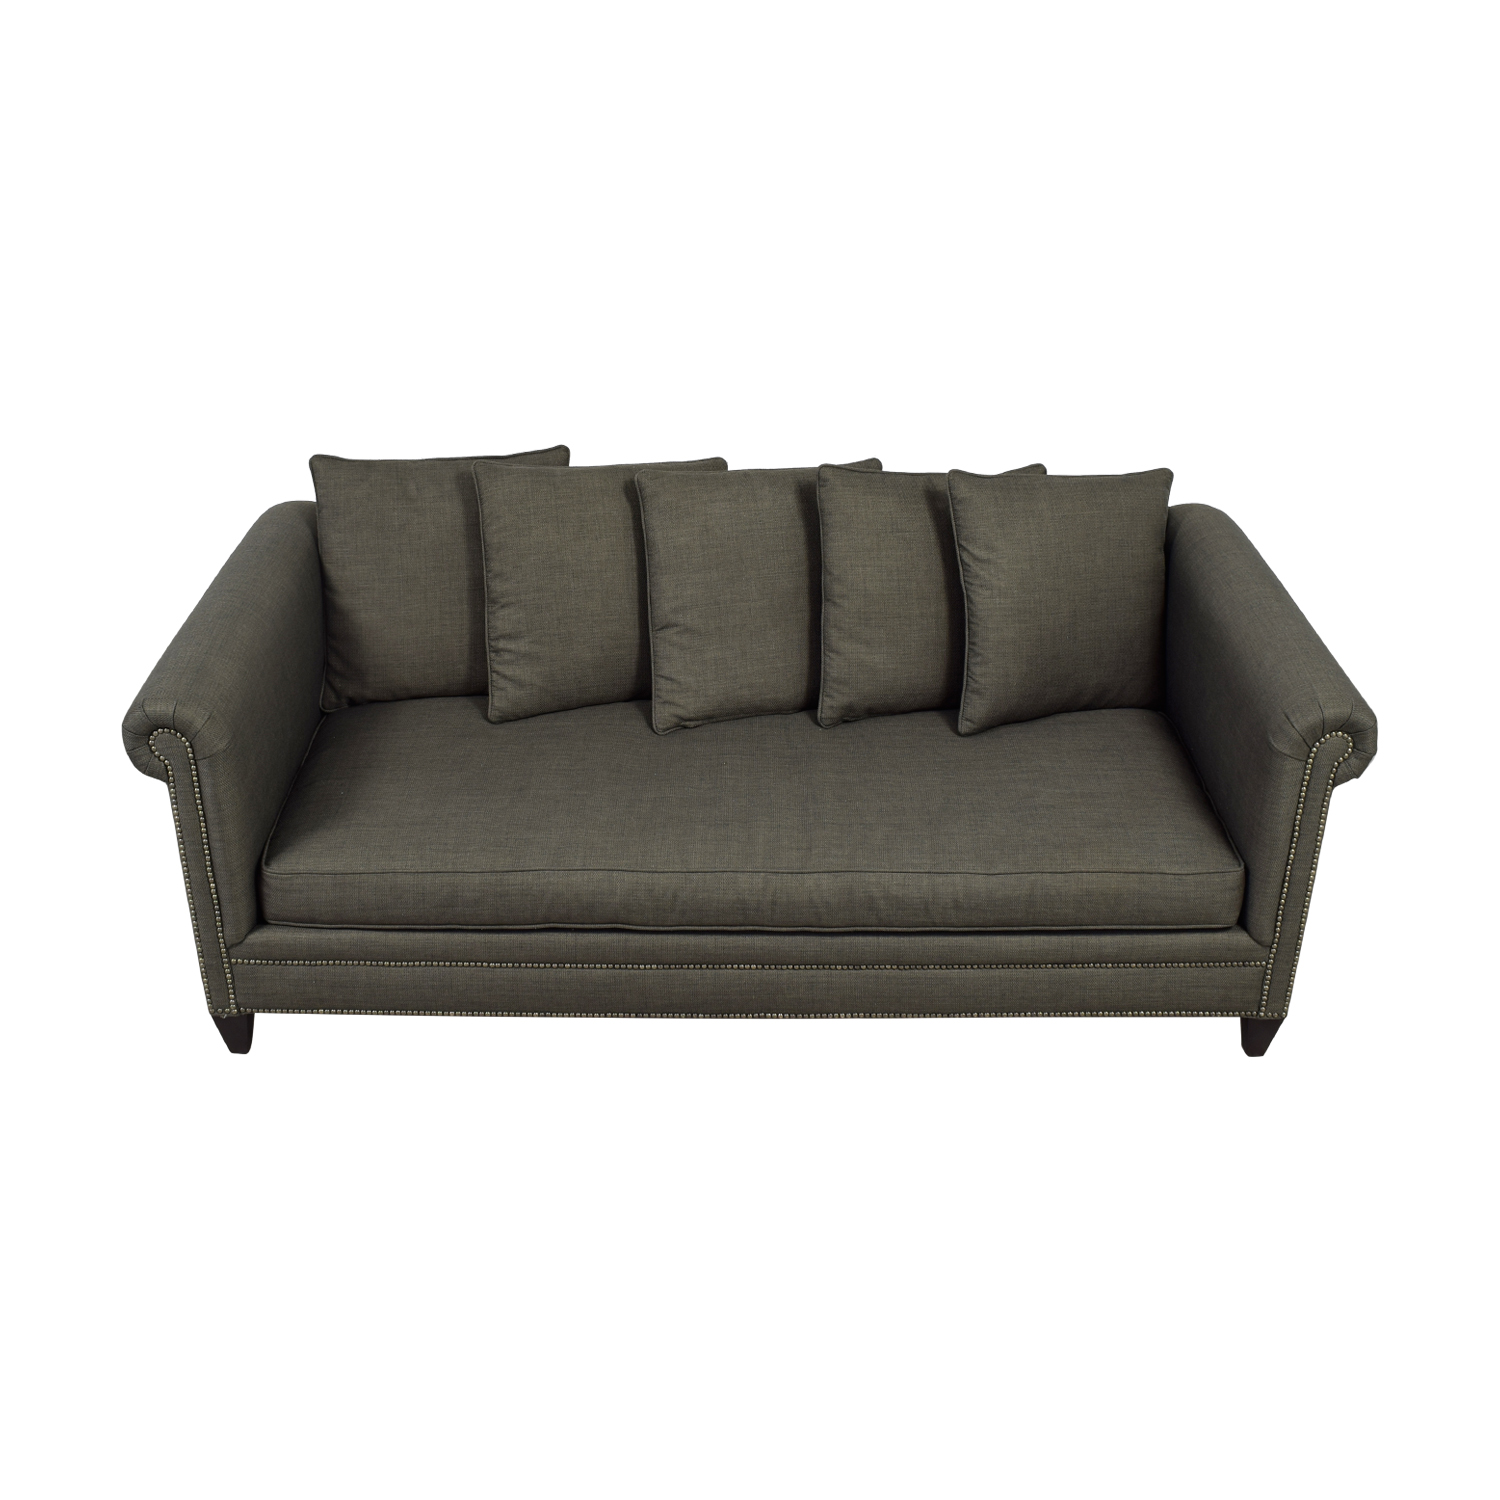 buy Crate & Barrel Durham Sofa Crate & Barrel Sofas